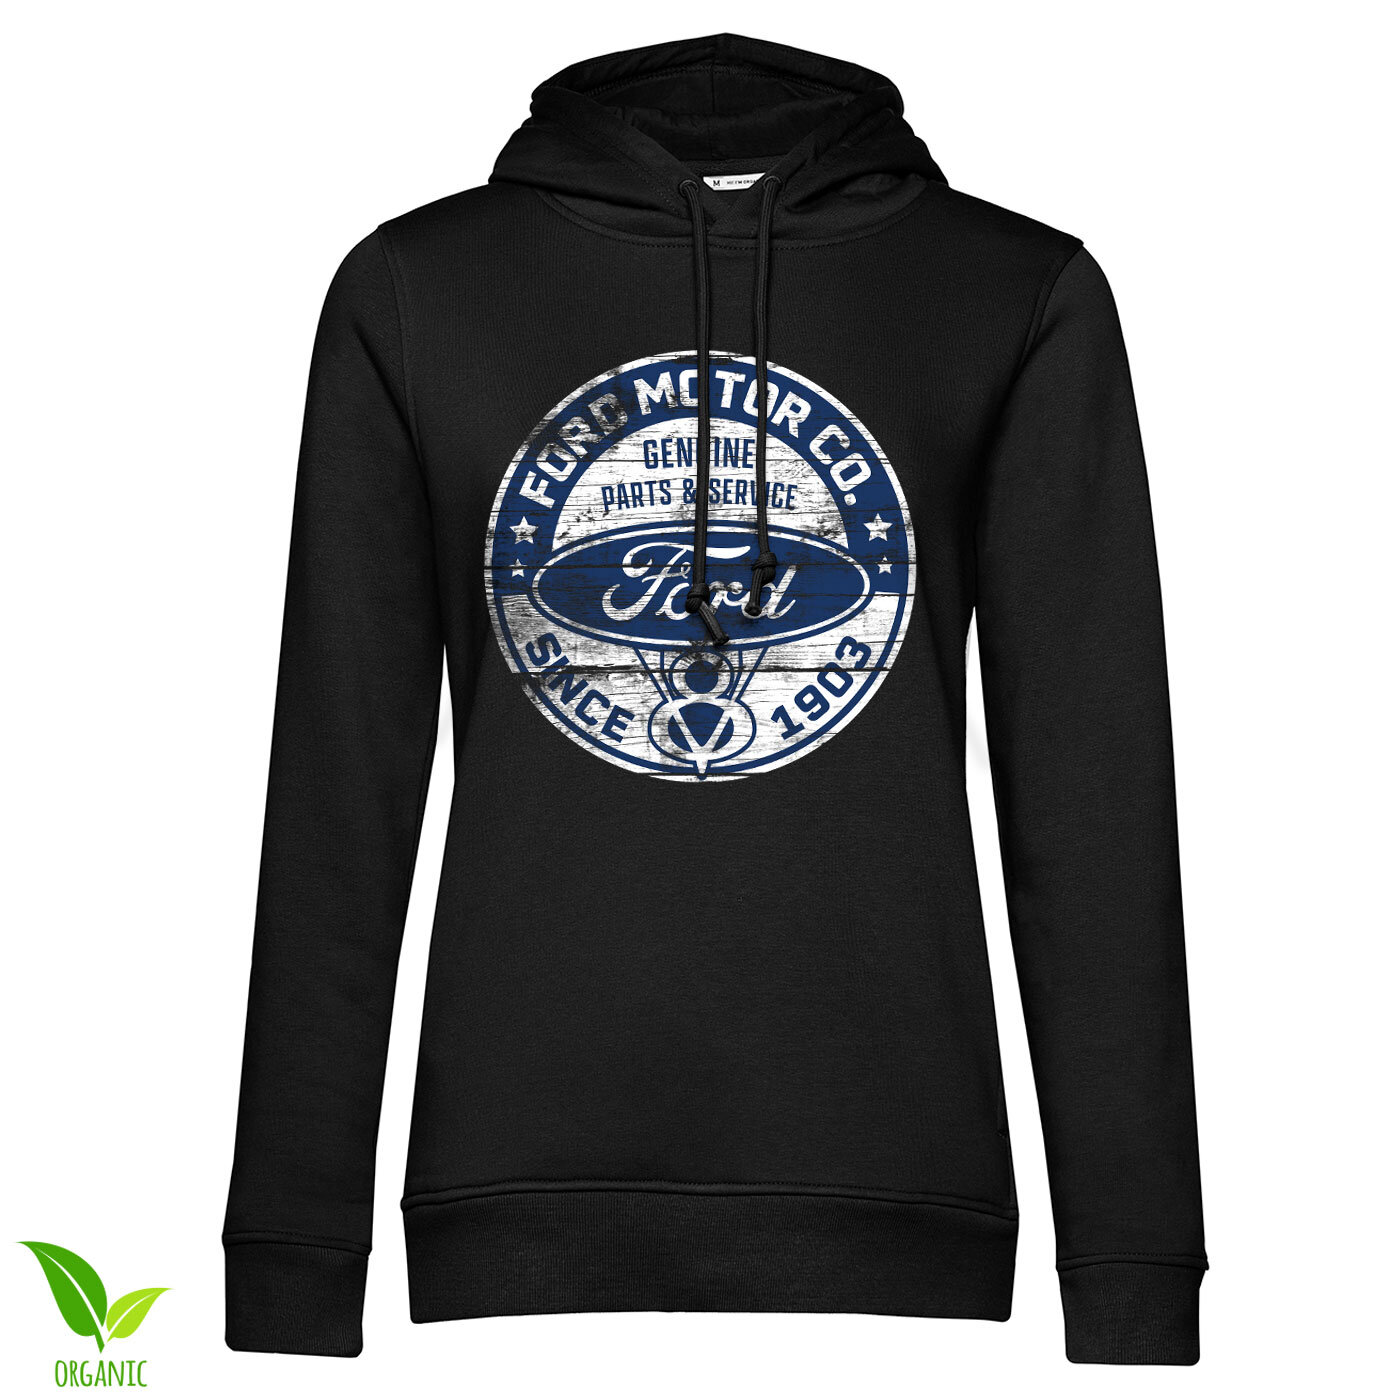 Ford Motor Co. Since 1903 Girls Hoodie